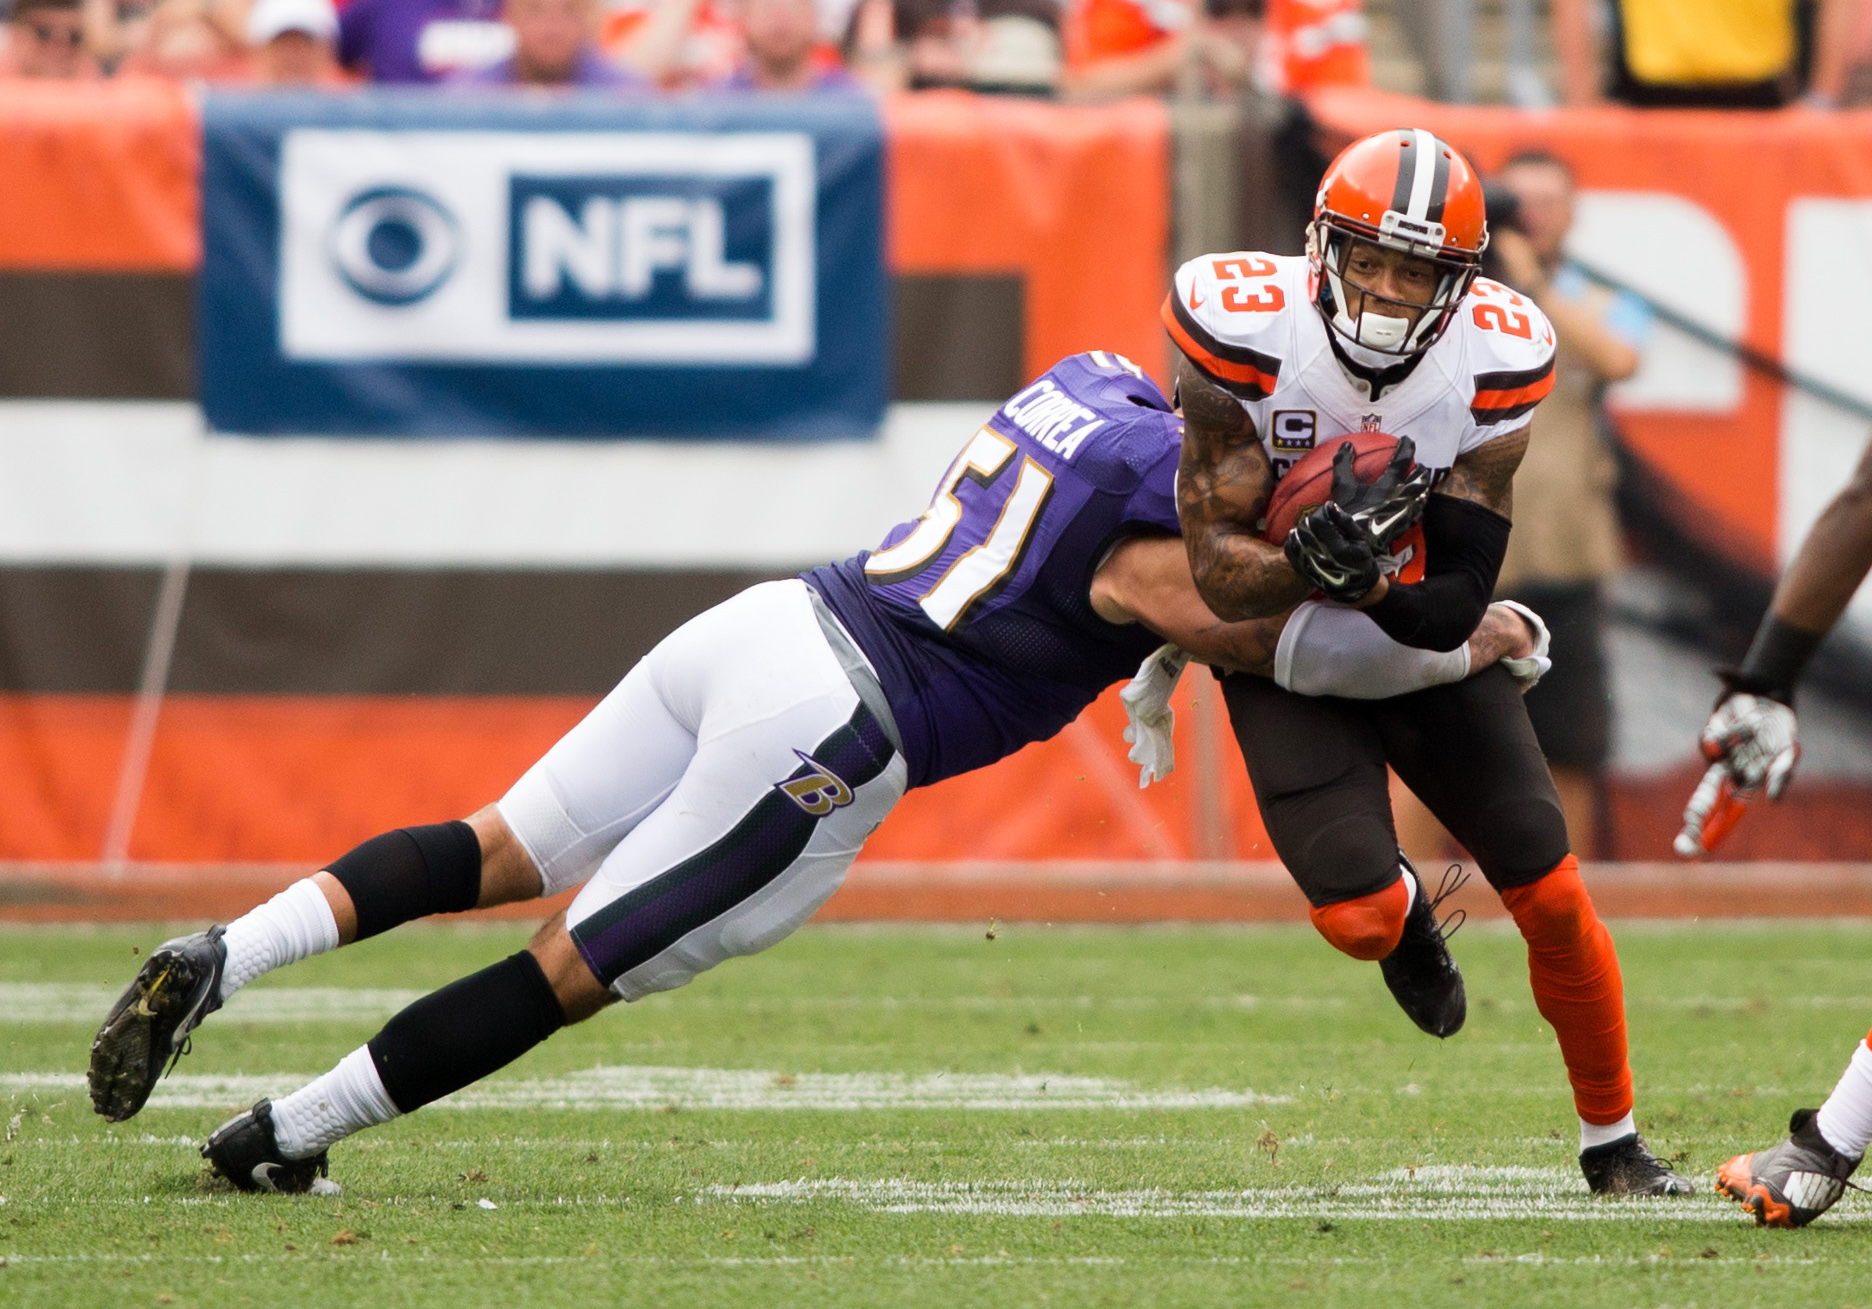 9550449-nfl-baltimore-ravens-at-cleveland-browns